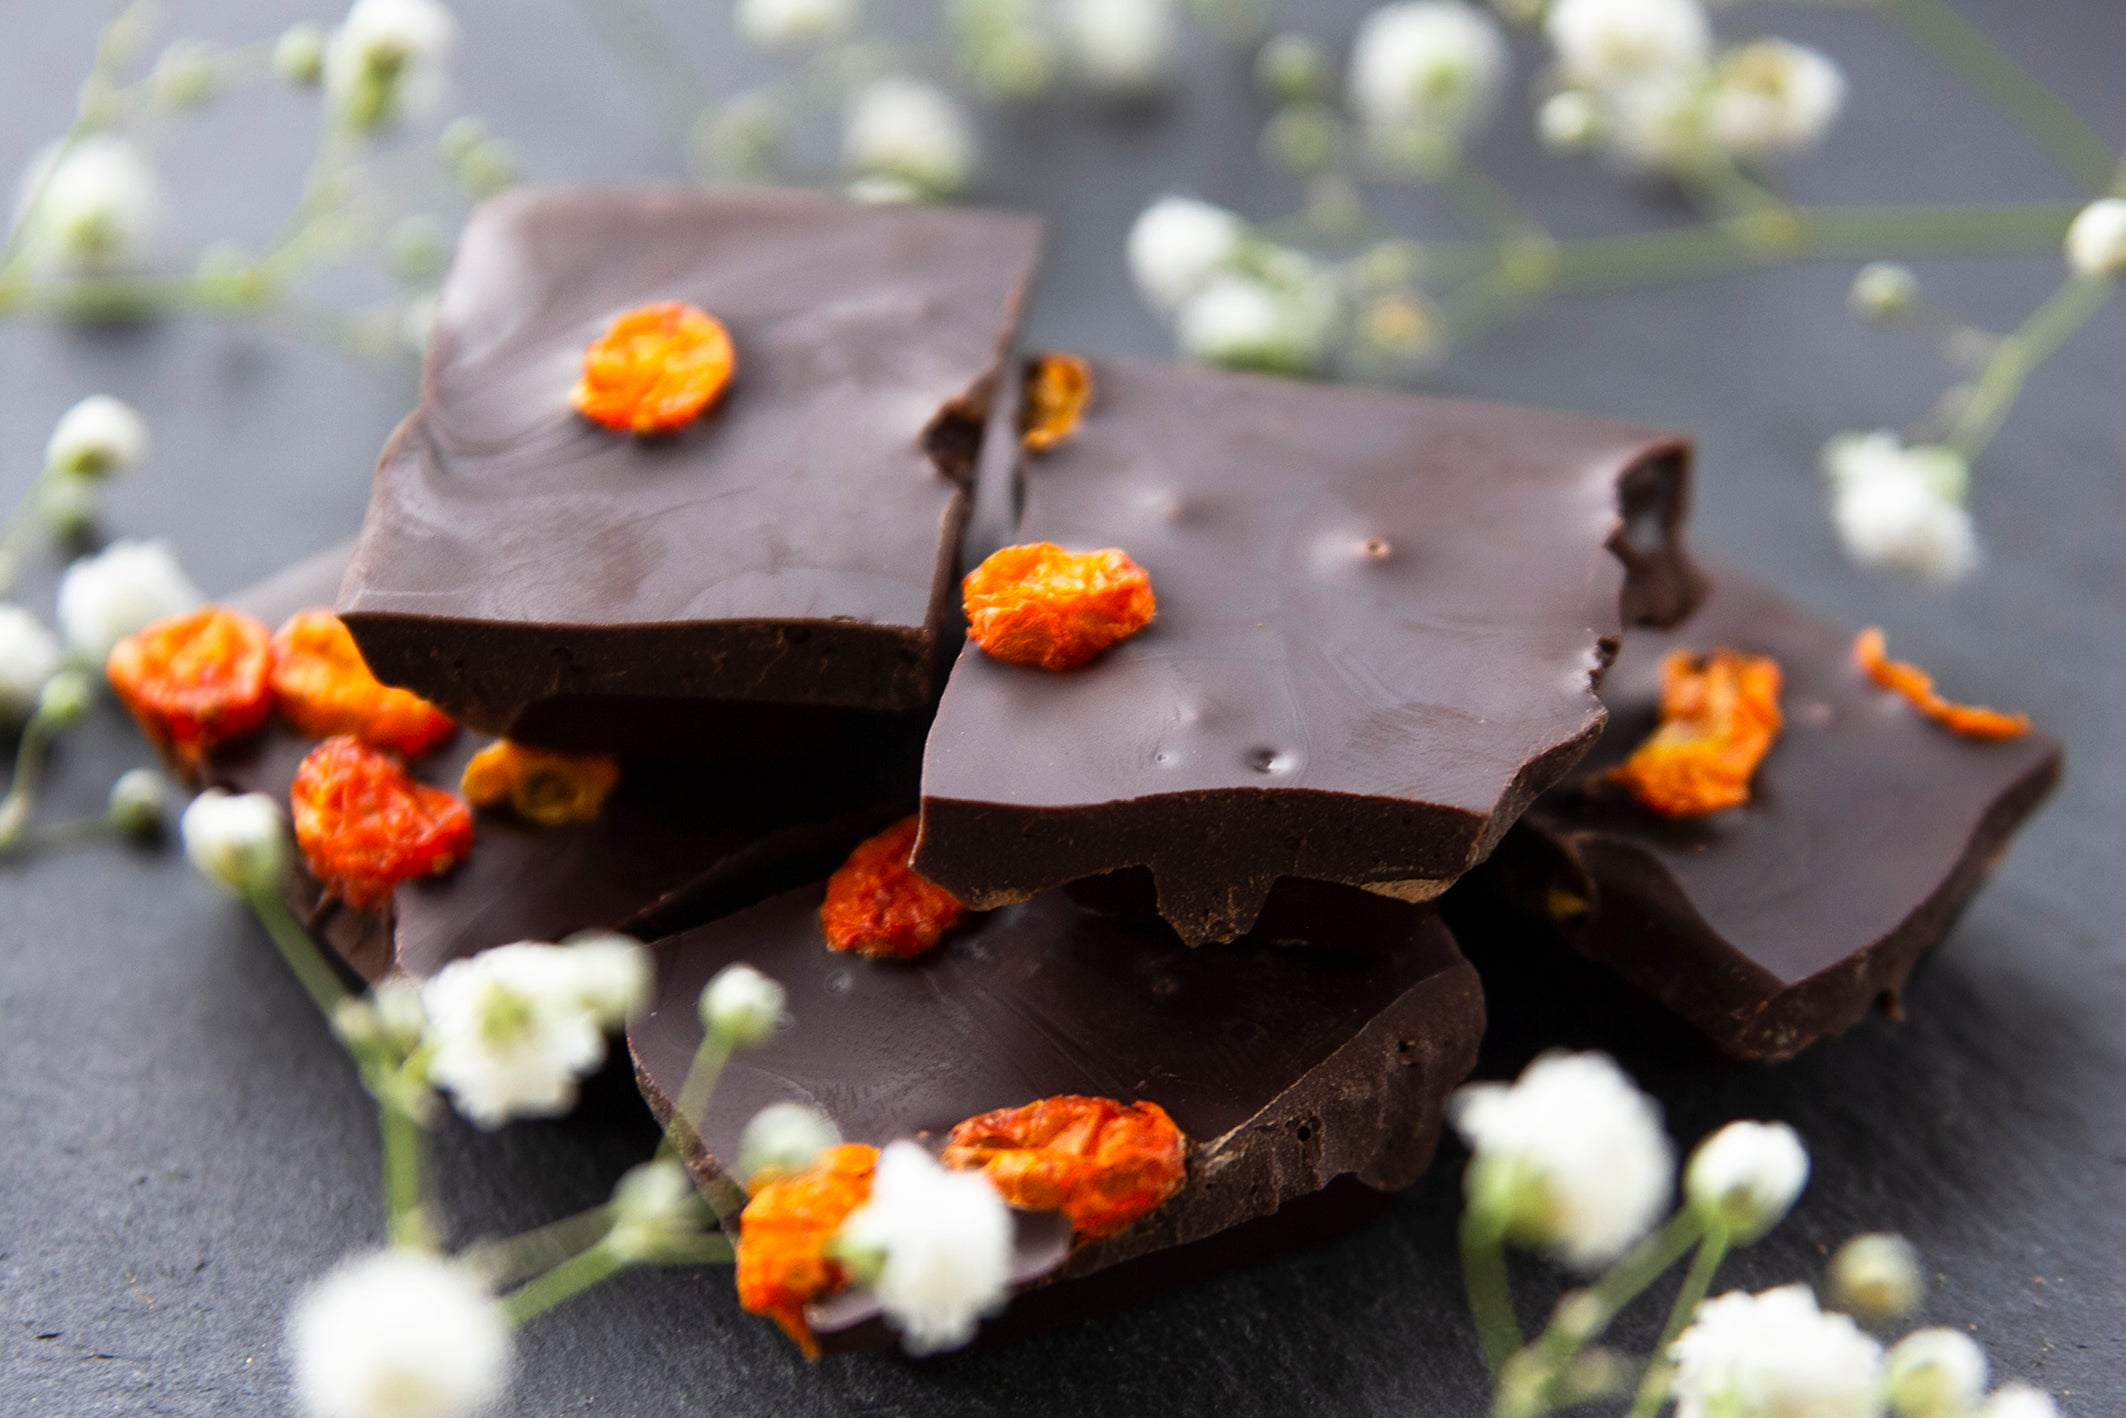 Sea buckthorn benefits - image of sea buckthorn chocolate